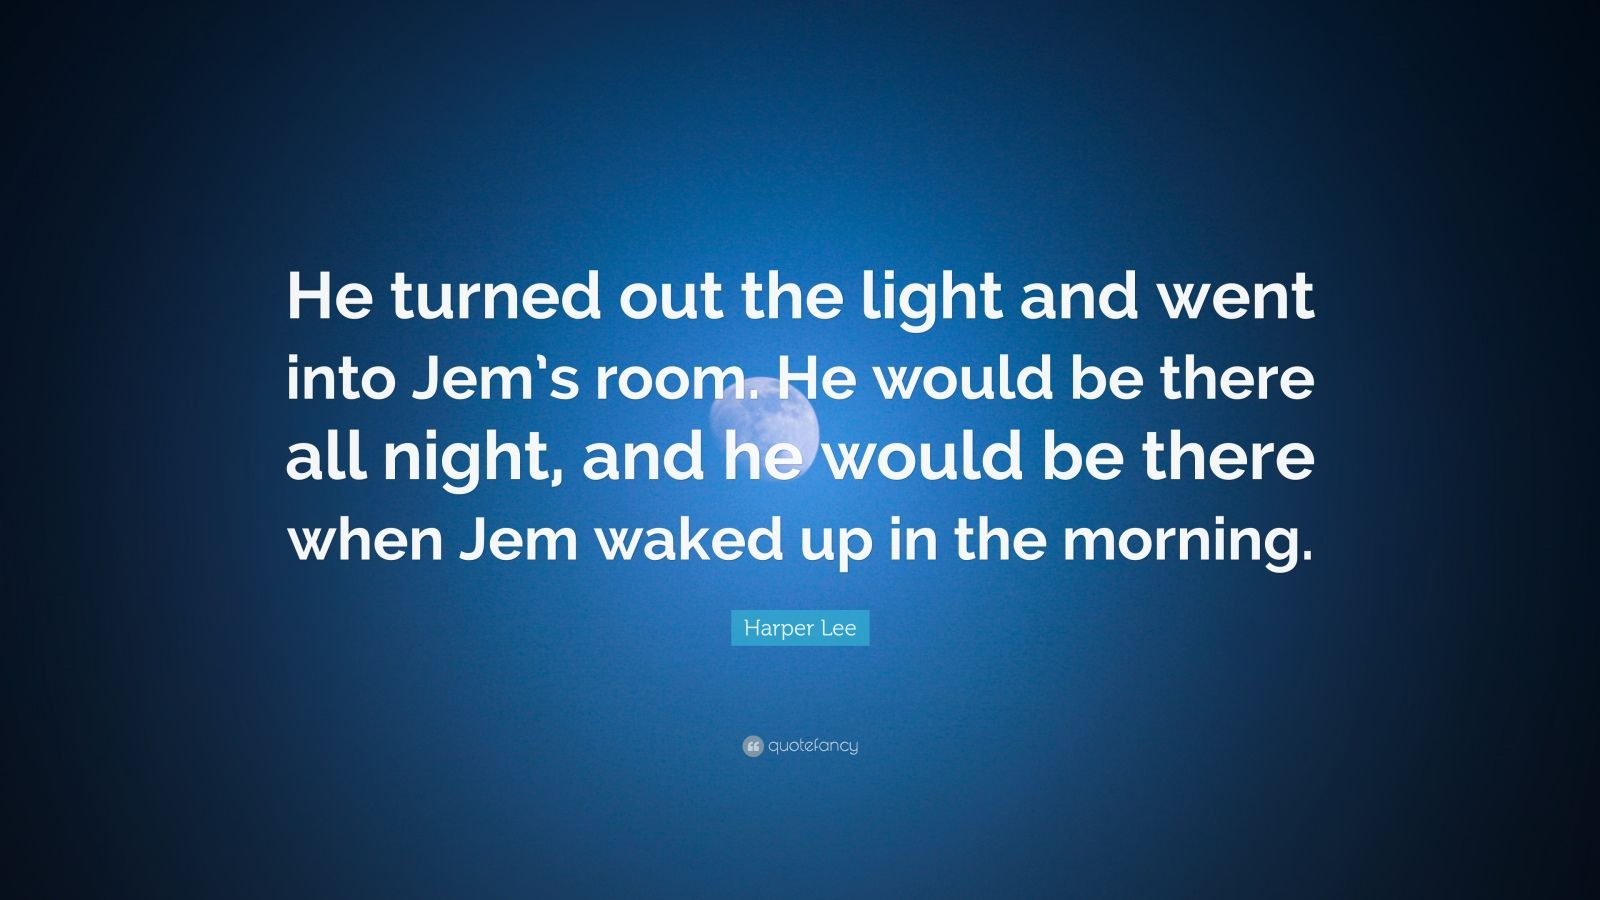 He Turned Out The Light And Went Into Jem S Room